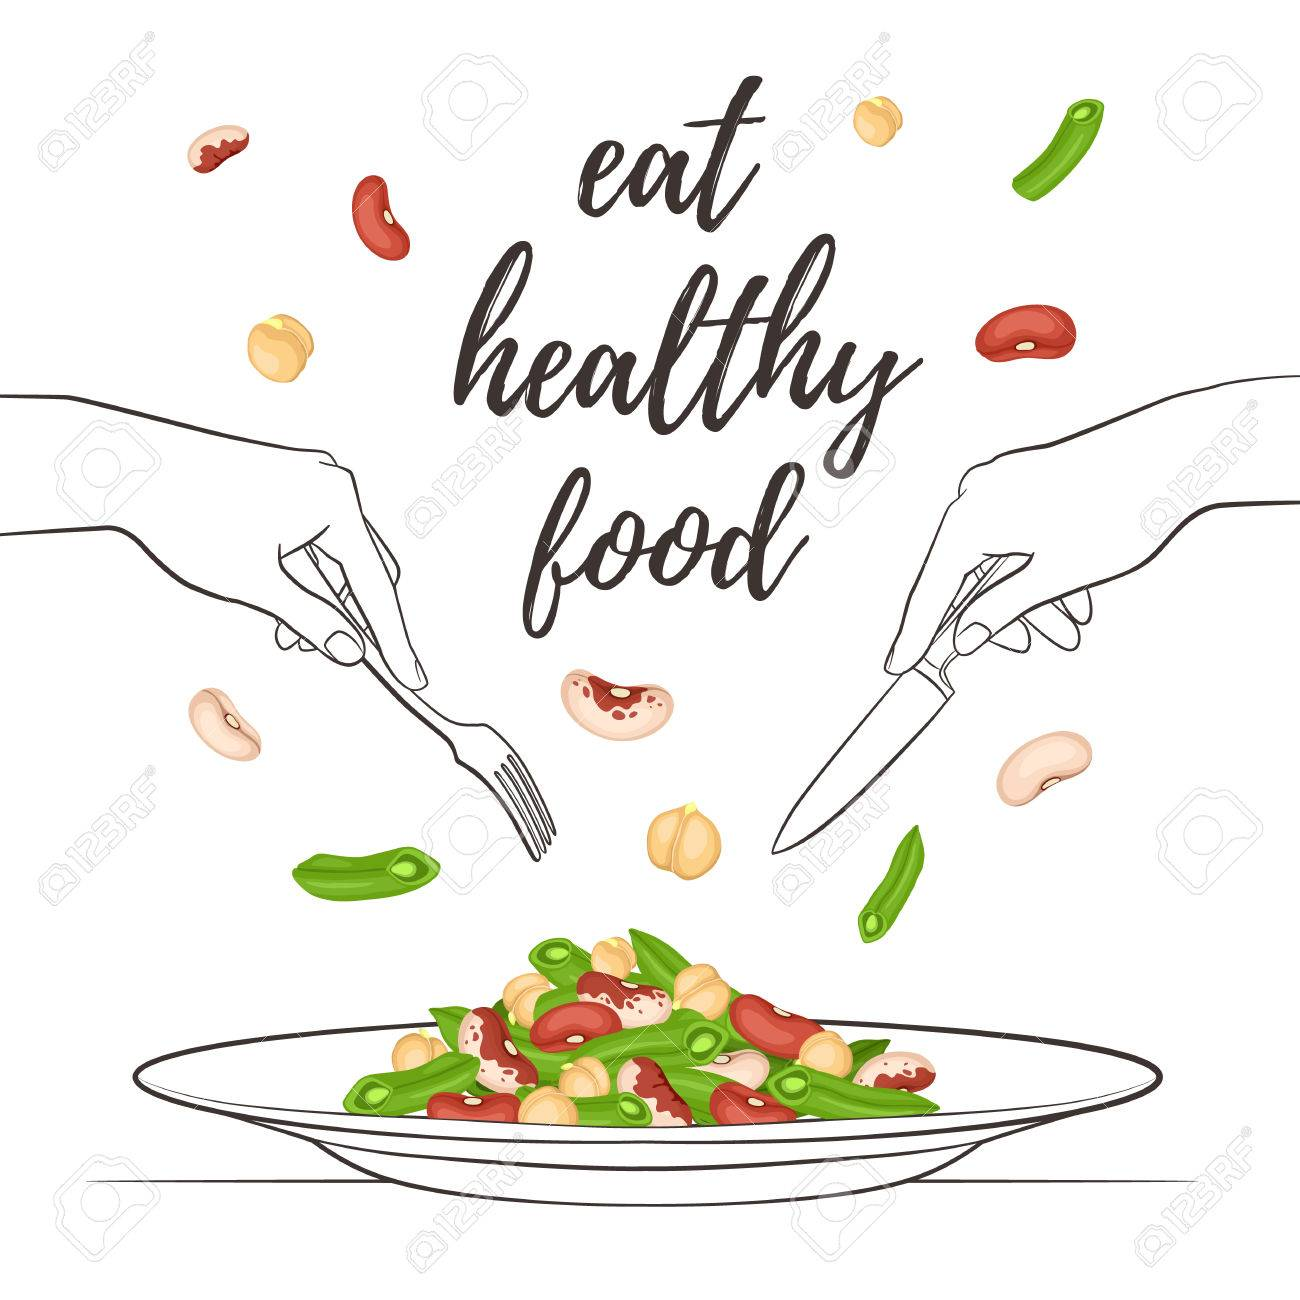 Eat Healthy Food Concept Fresh Salad From Beans And Chickpea Royalty Free Cliparts Vectors And Stock Illustration Image 58015548